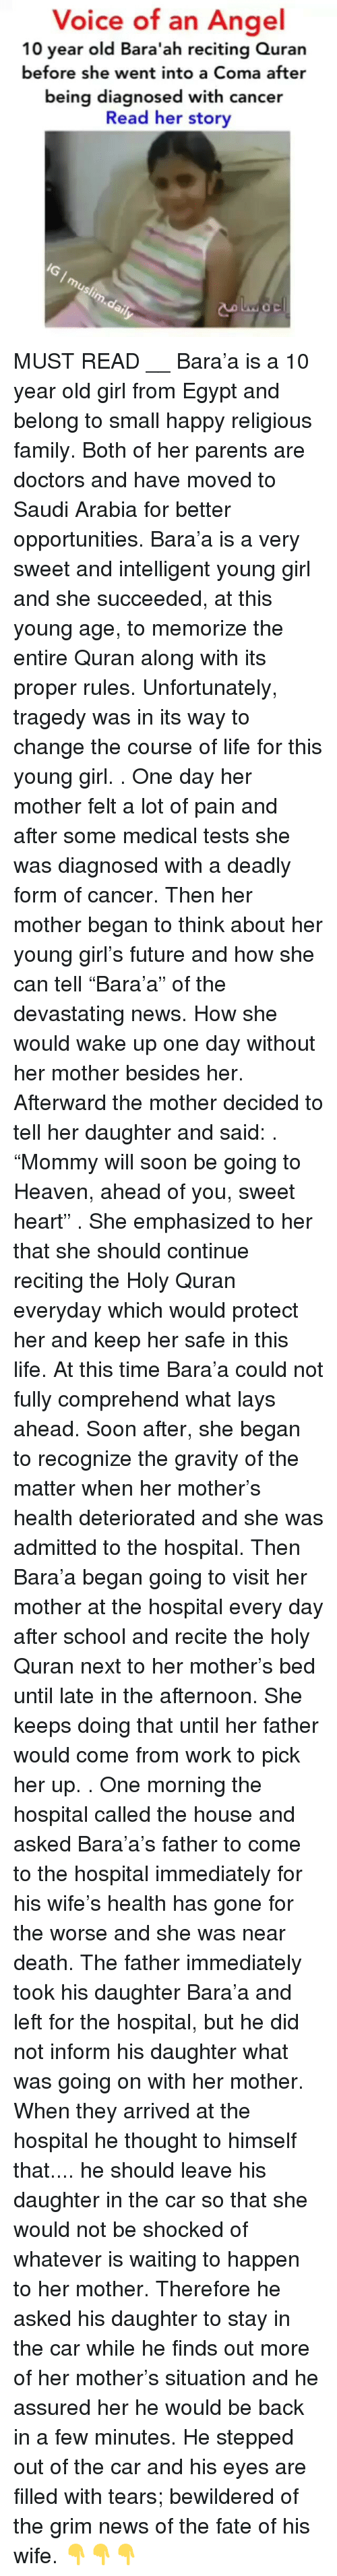 Voice of an Angel 10 Year Old Bara'ah Reciting Quran Before